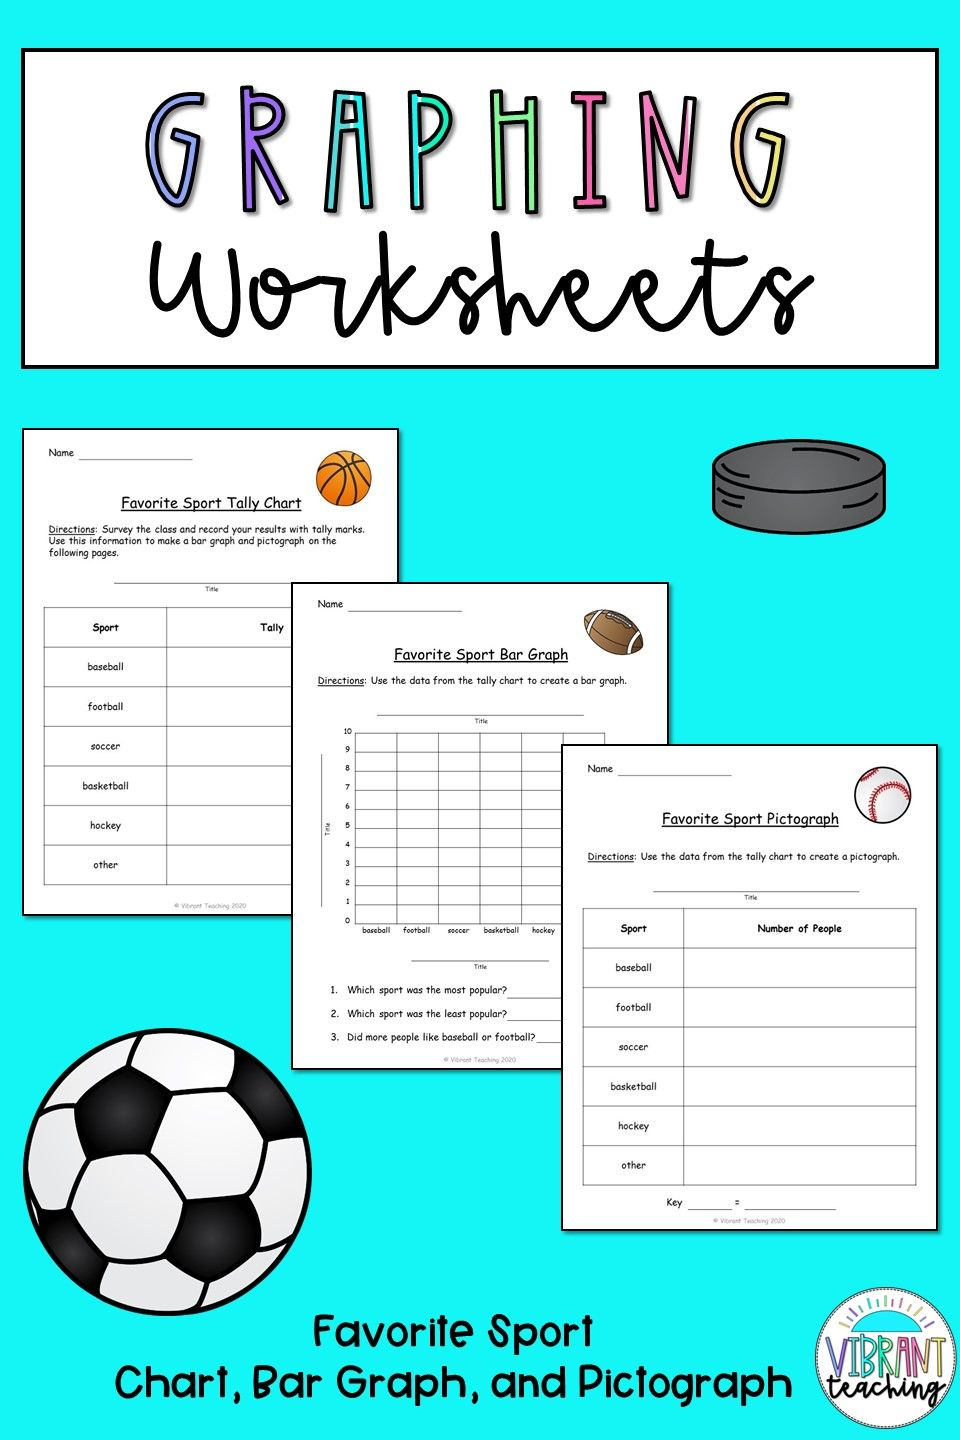 Graphing Worksheets Favorite Sport Graphing Worksheets Bar Graphs Kids Worksheets Printables [ 1440 x 960 Pixel ]